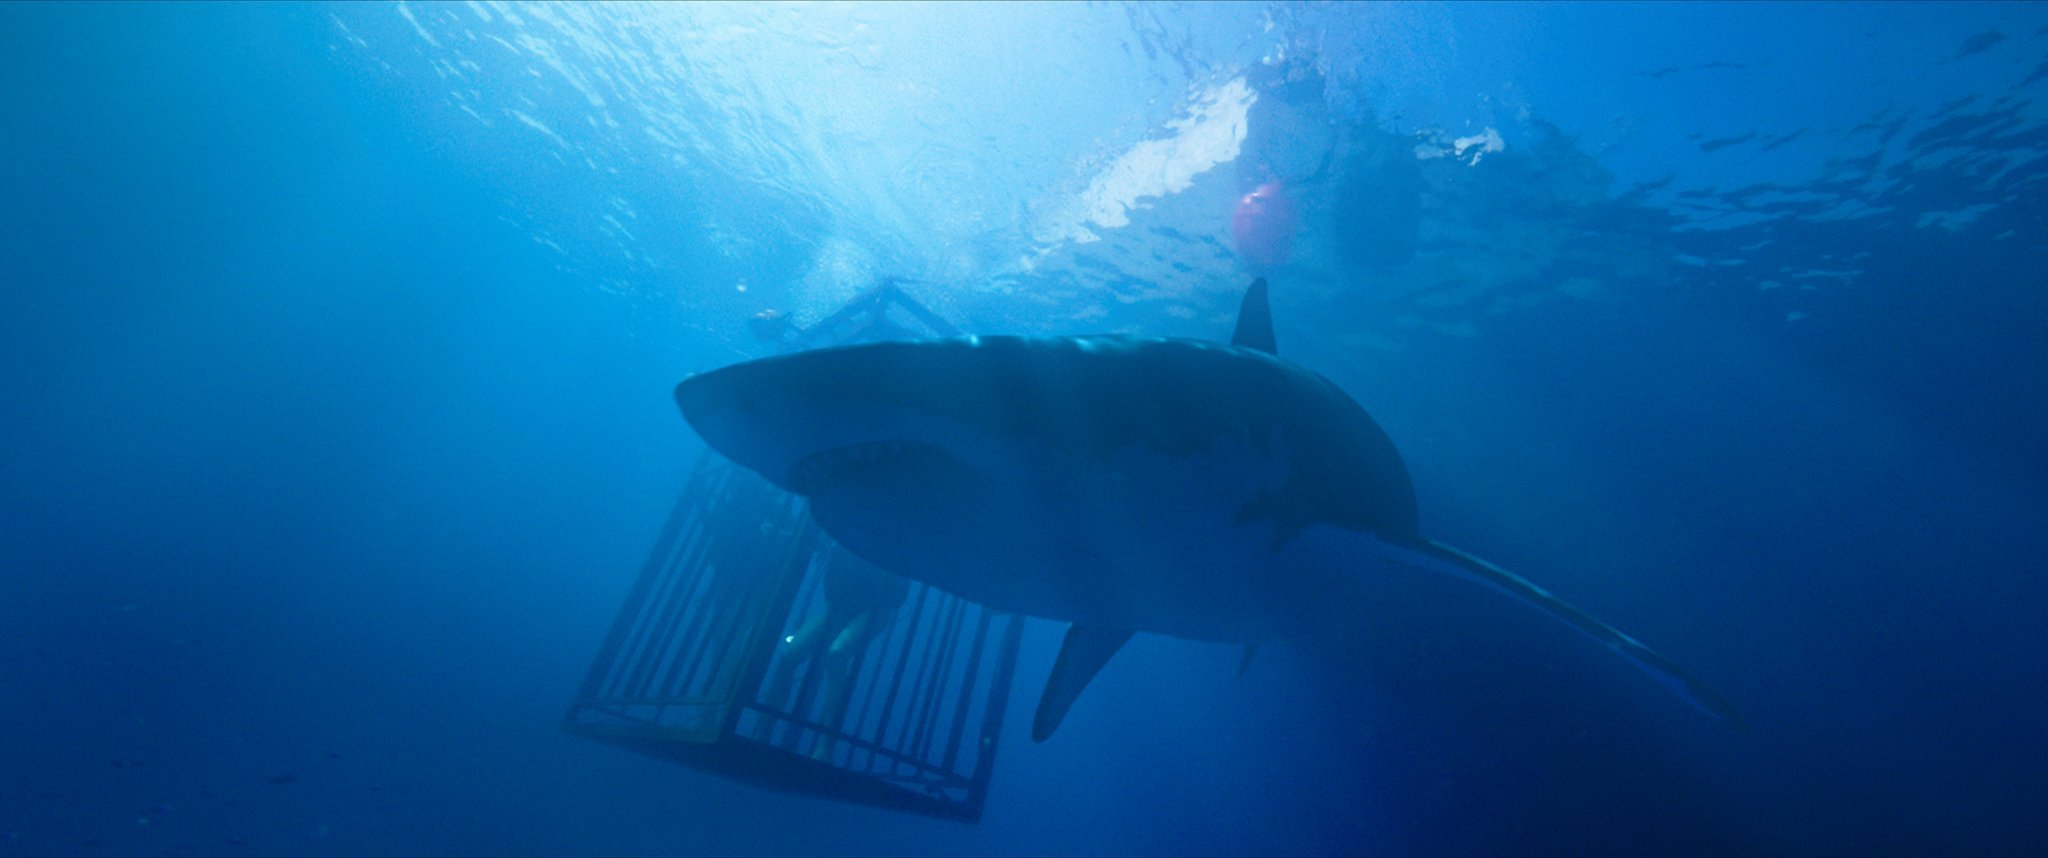 Photo du film 47 Meters Down avec un requin